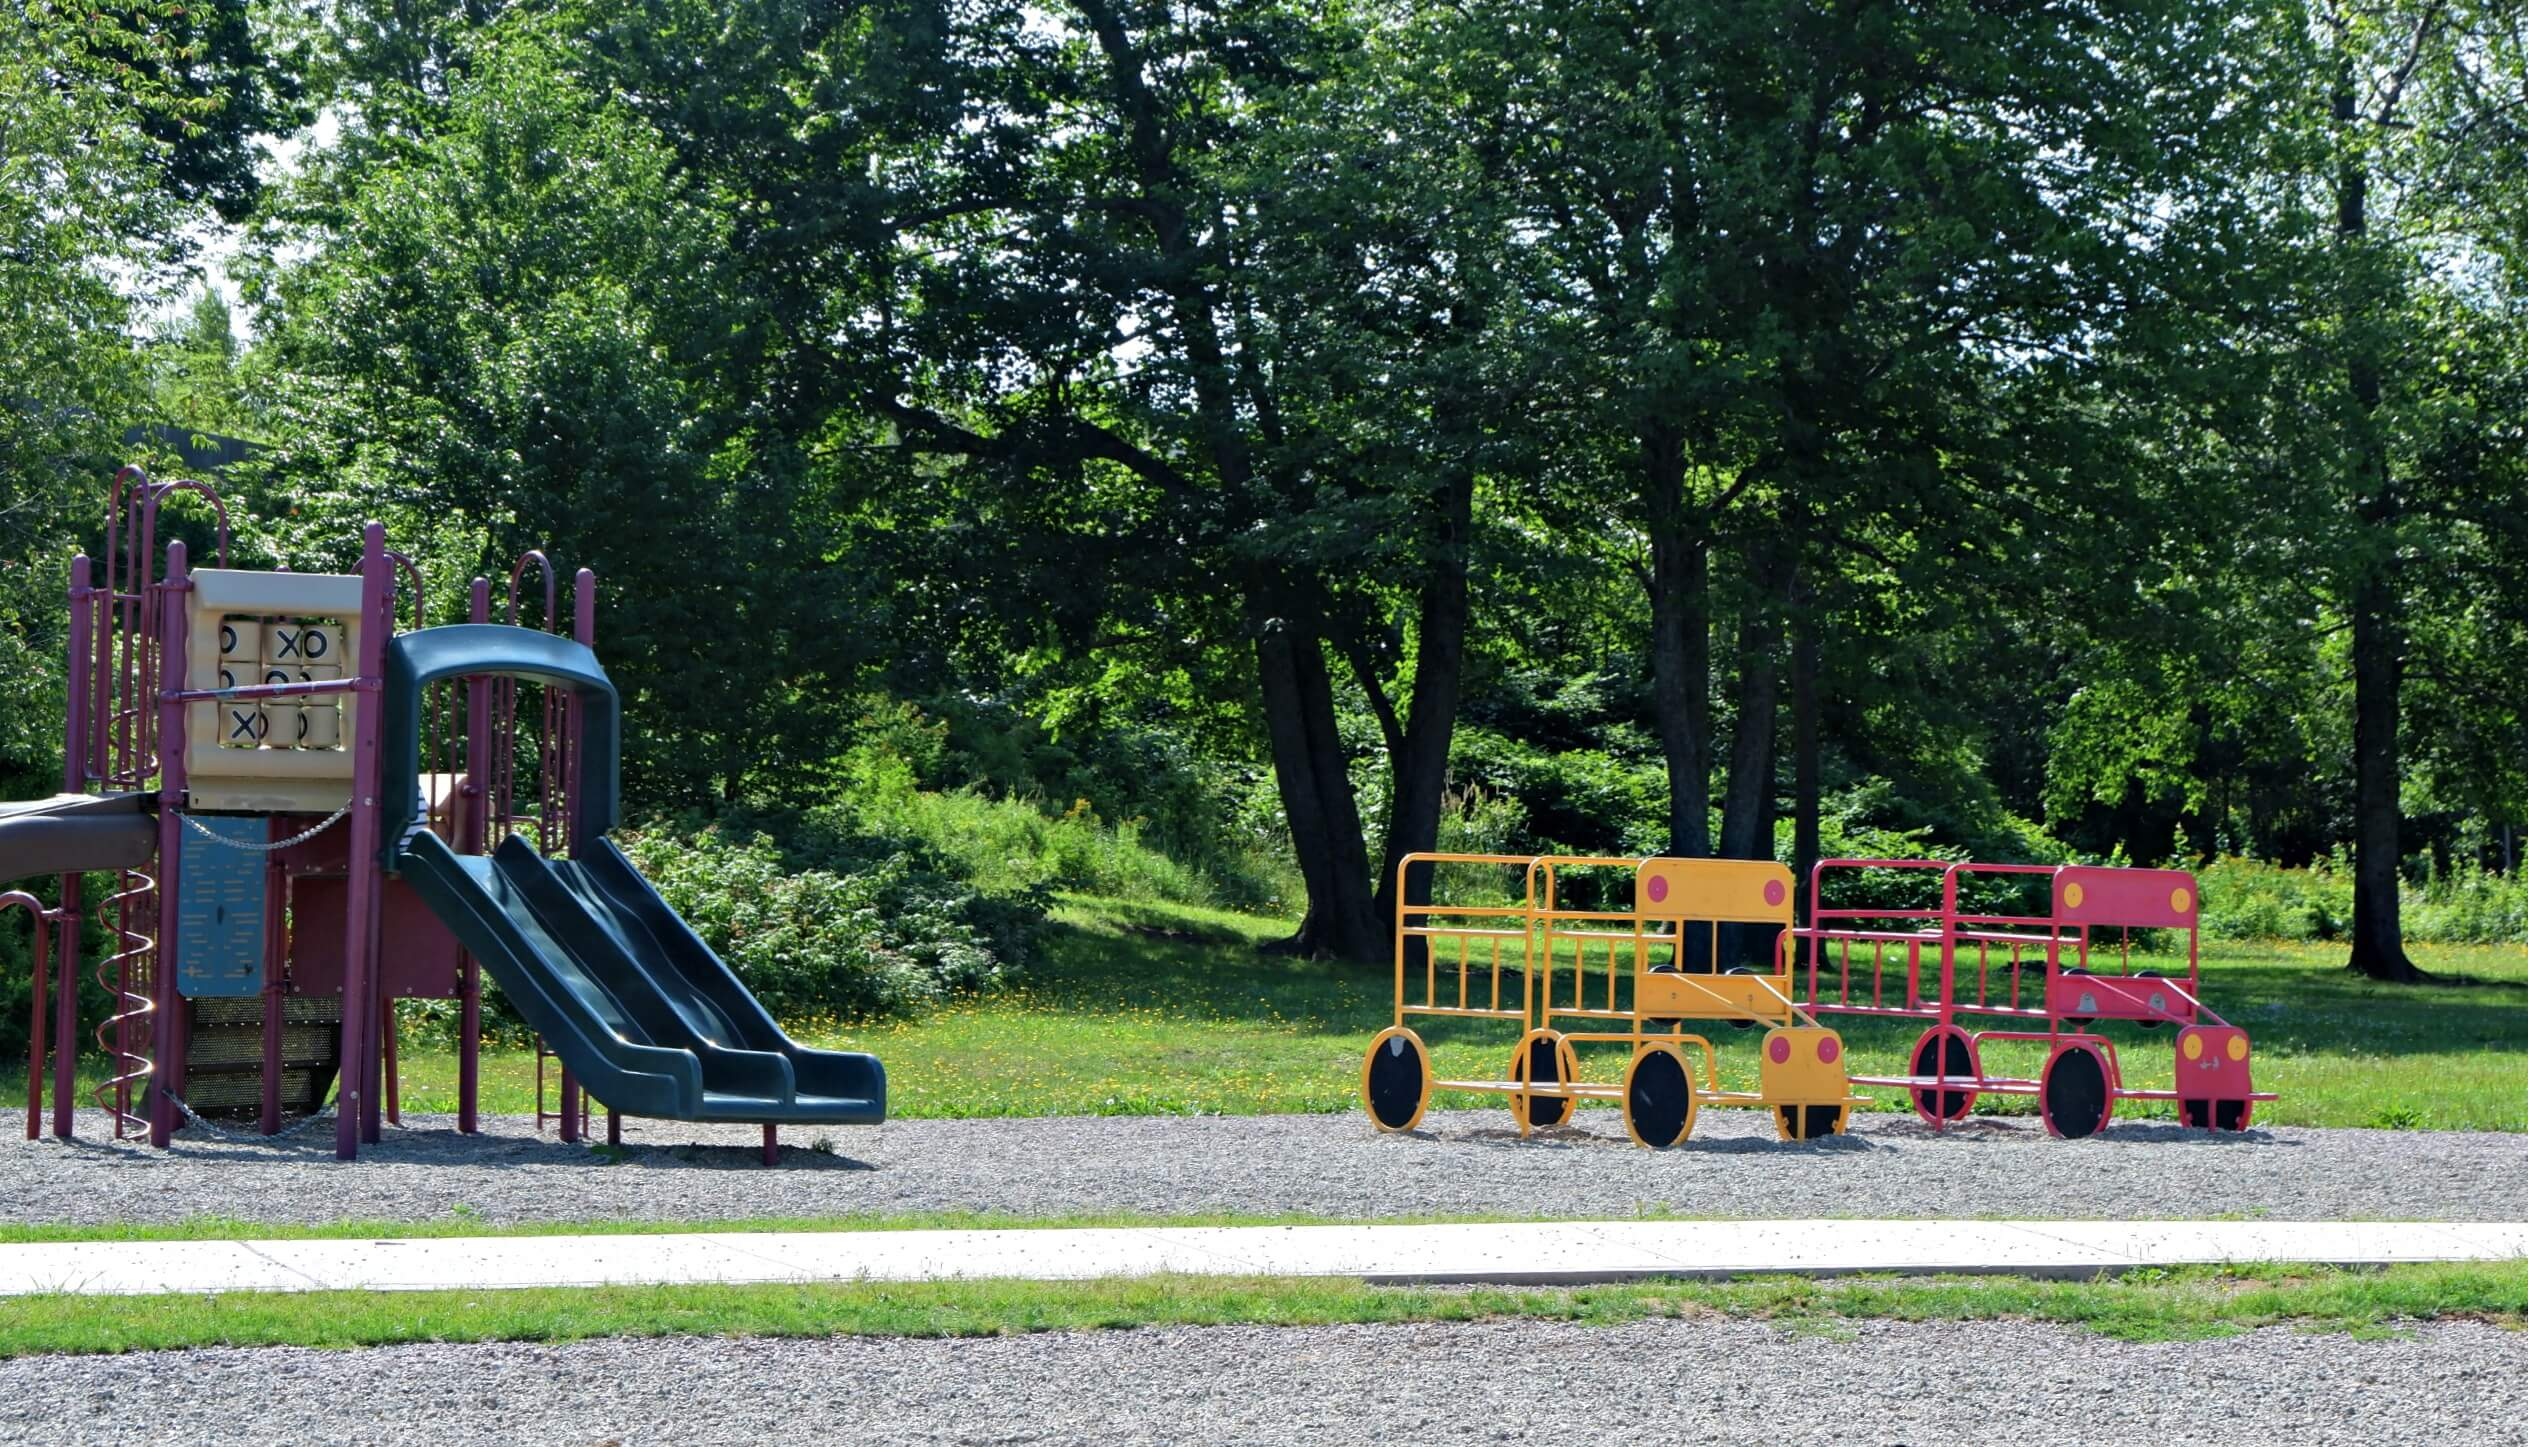 riverview wooden castle all world super play park playground moncton dieppe best pickle planet review frank l bowser elementary bus